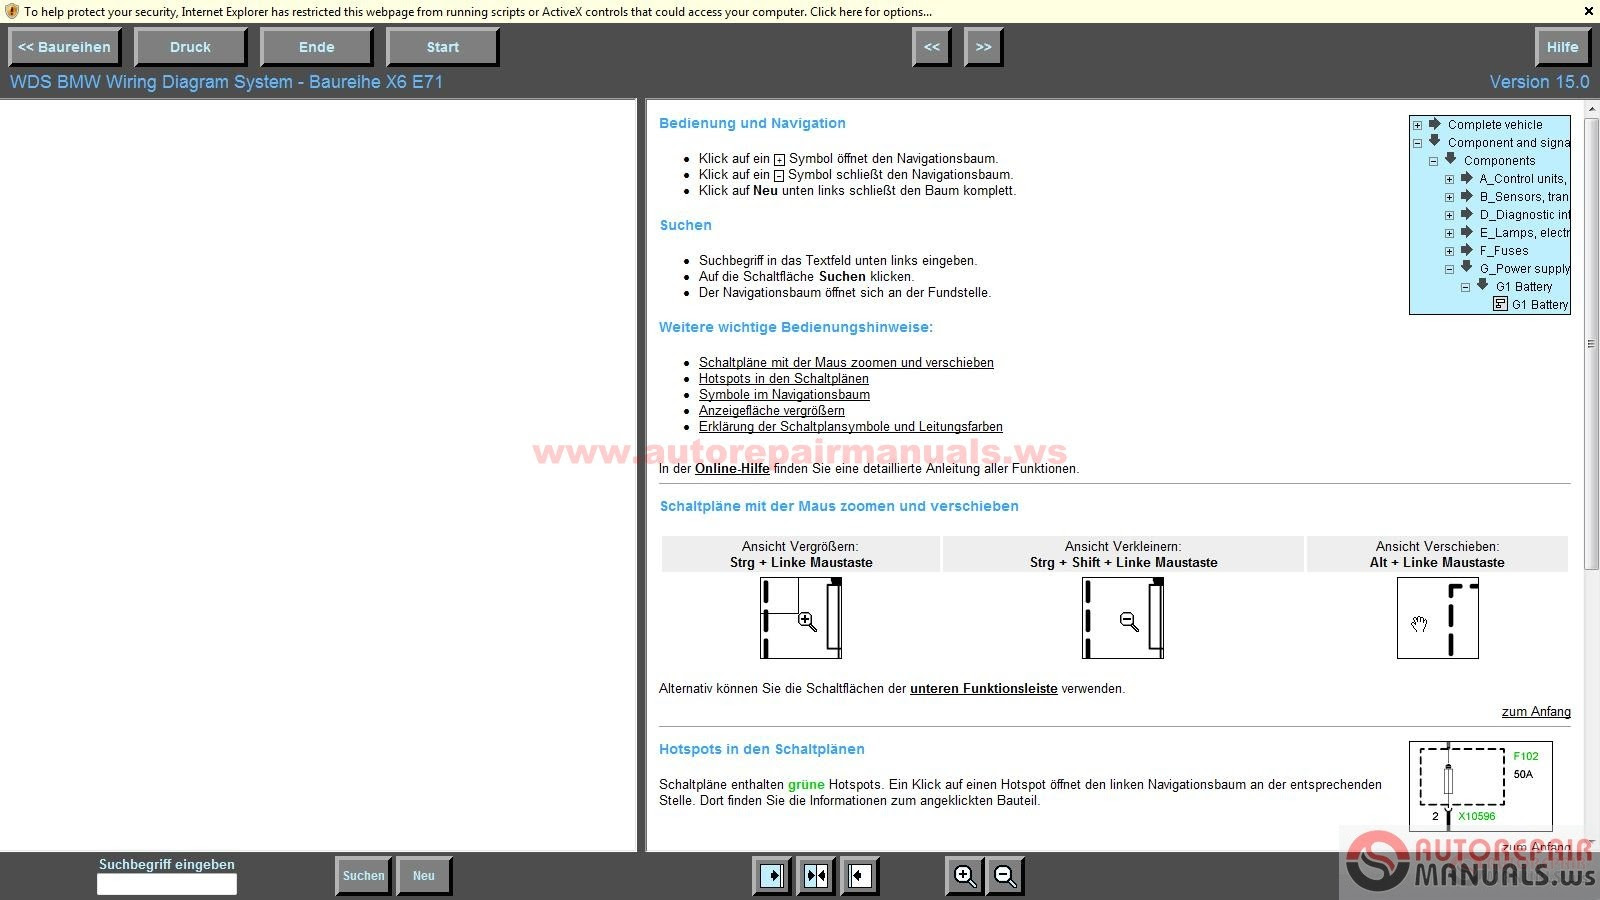 Free Auto Repair Manual   Bmw Wds V15 And Mini Wds V7 Wiring Diagram System